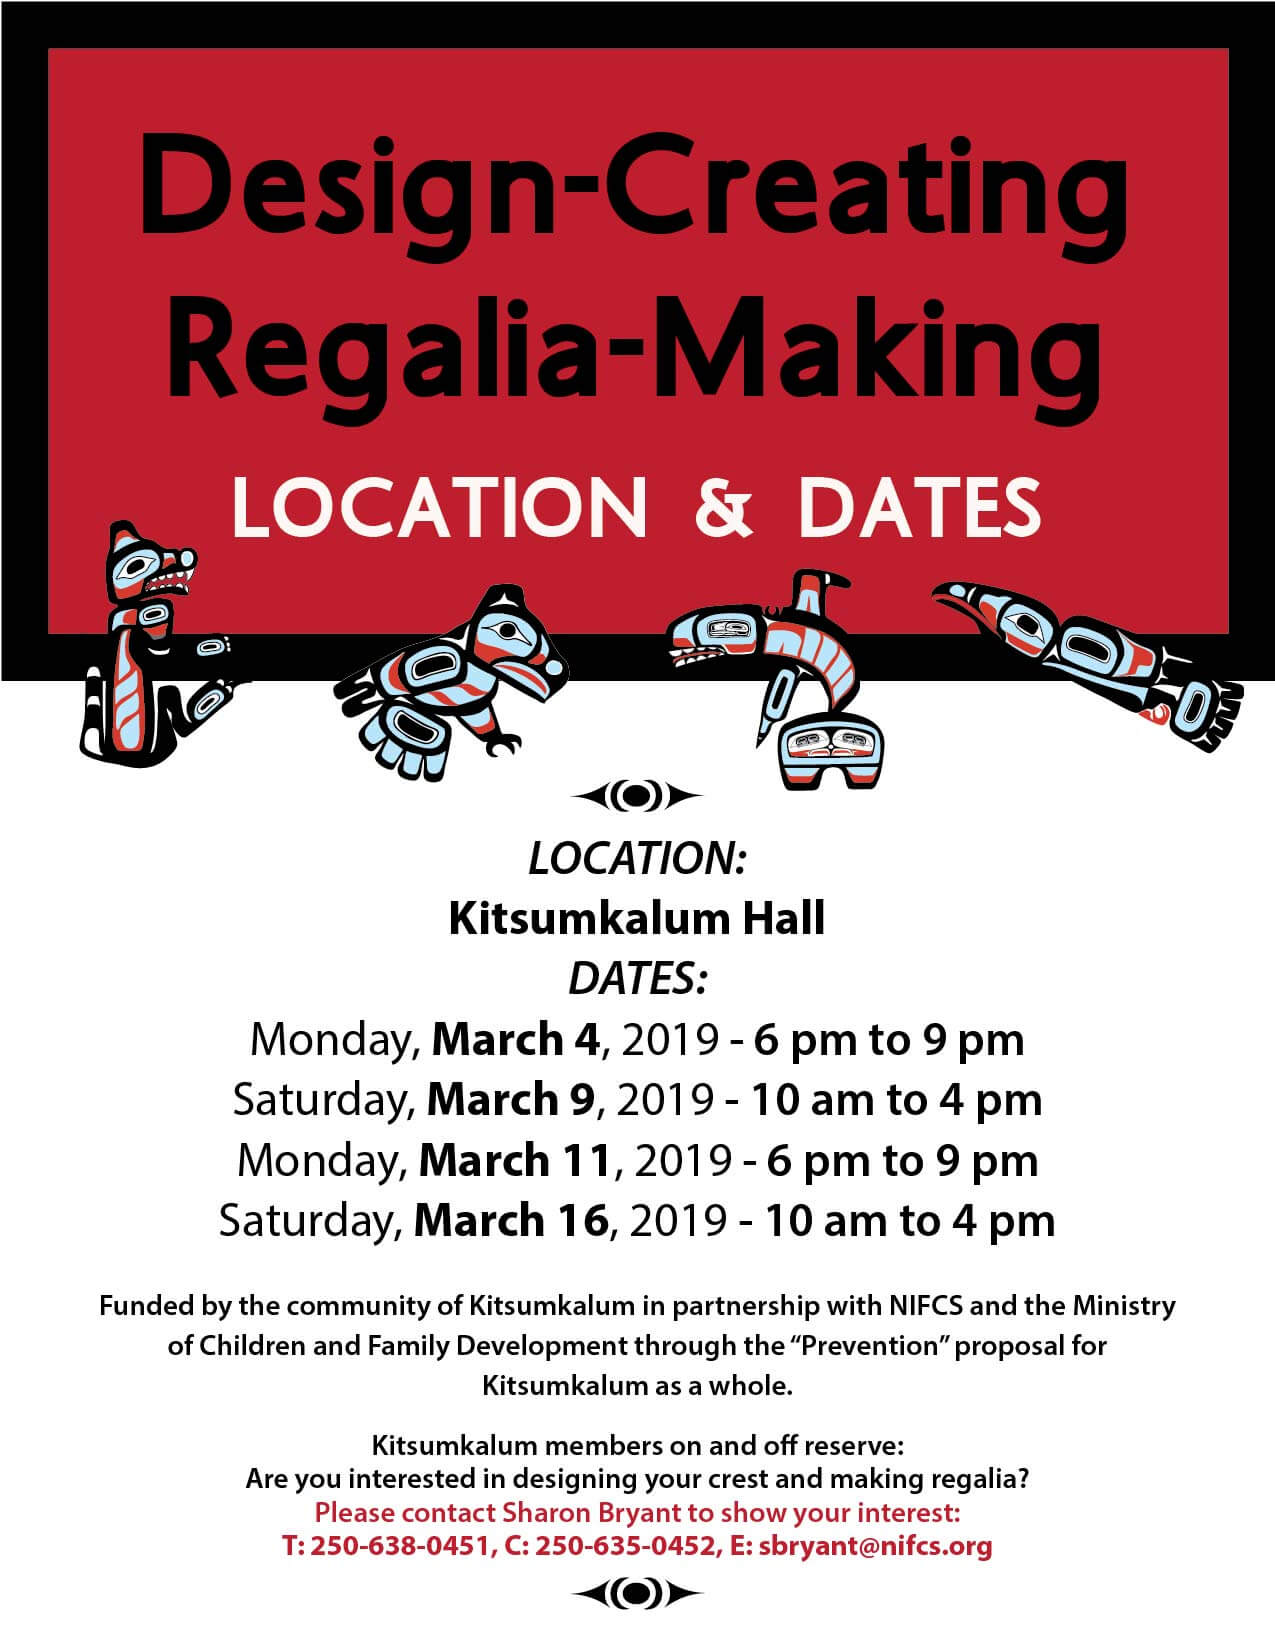 Dates and Location for Design Creating and Regalia Making Program